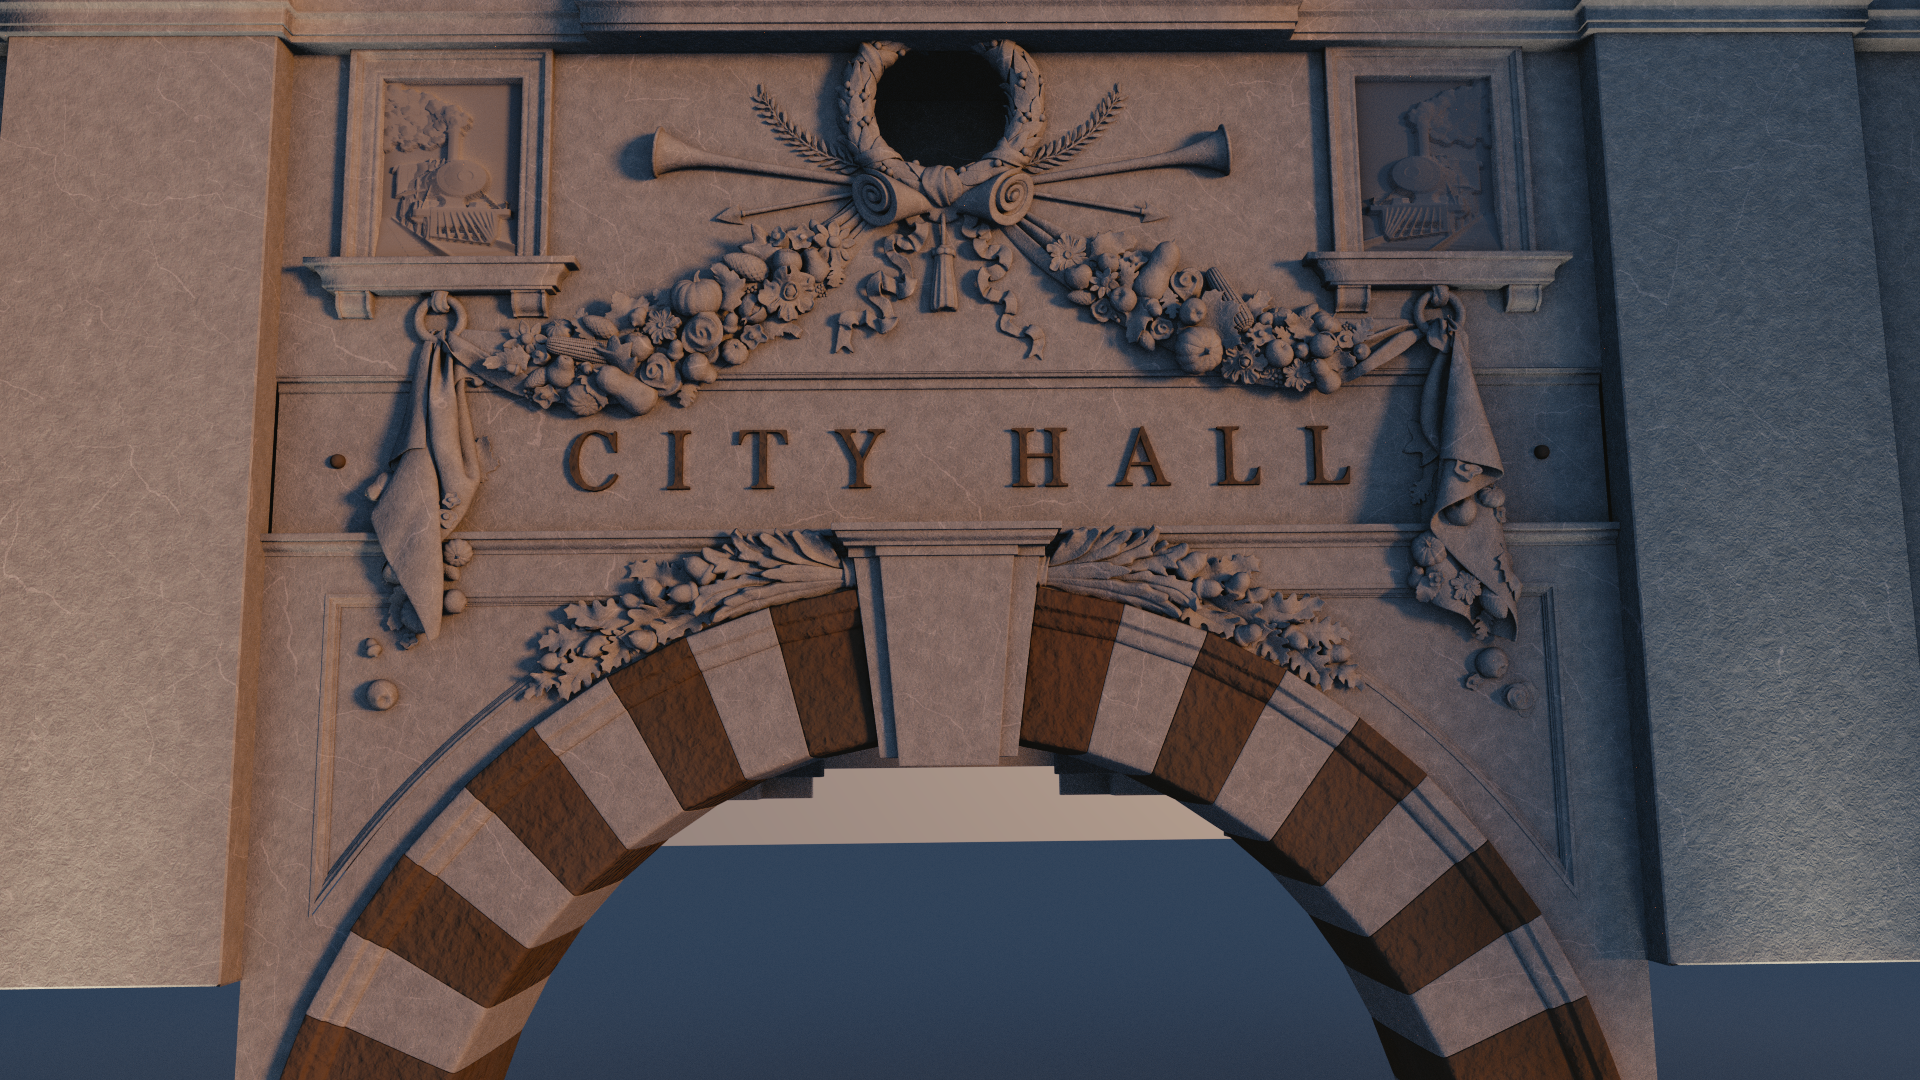 City Hall archway render work in progress